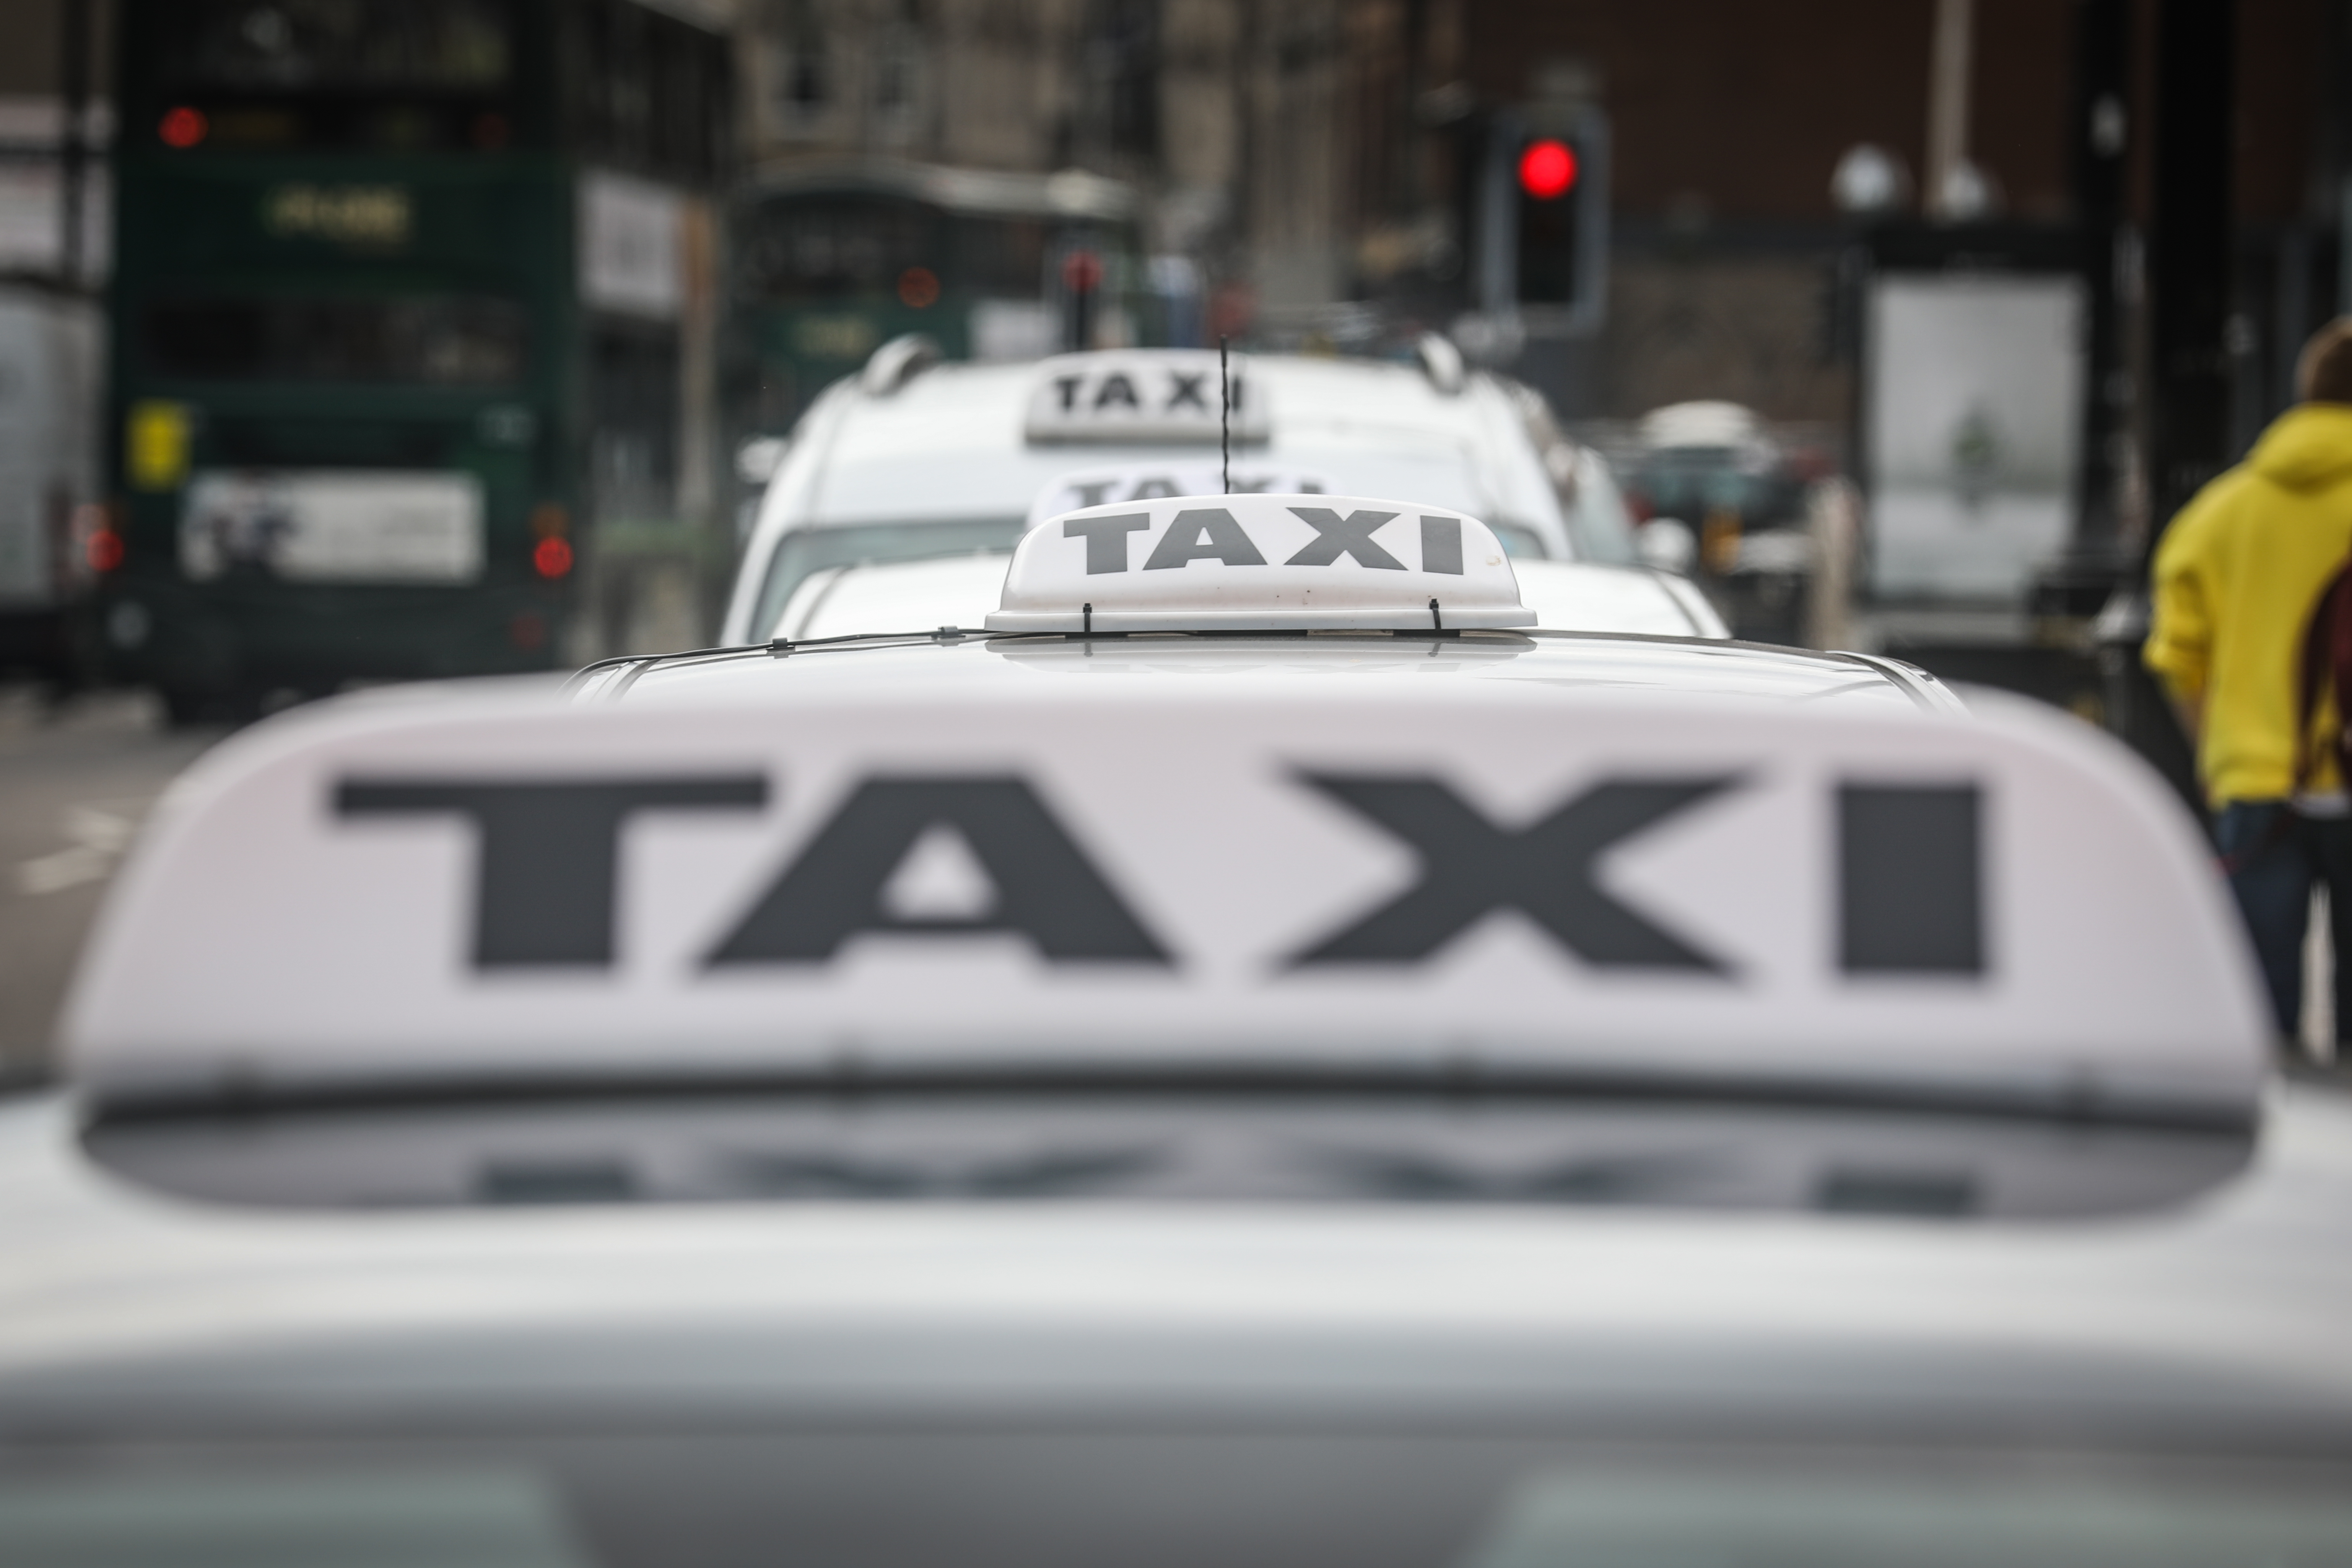 The incident took place at the Brook Street taxi rank.